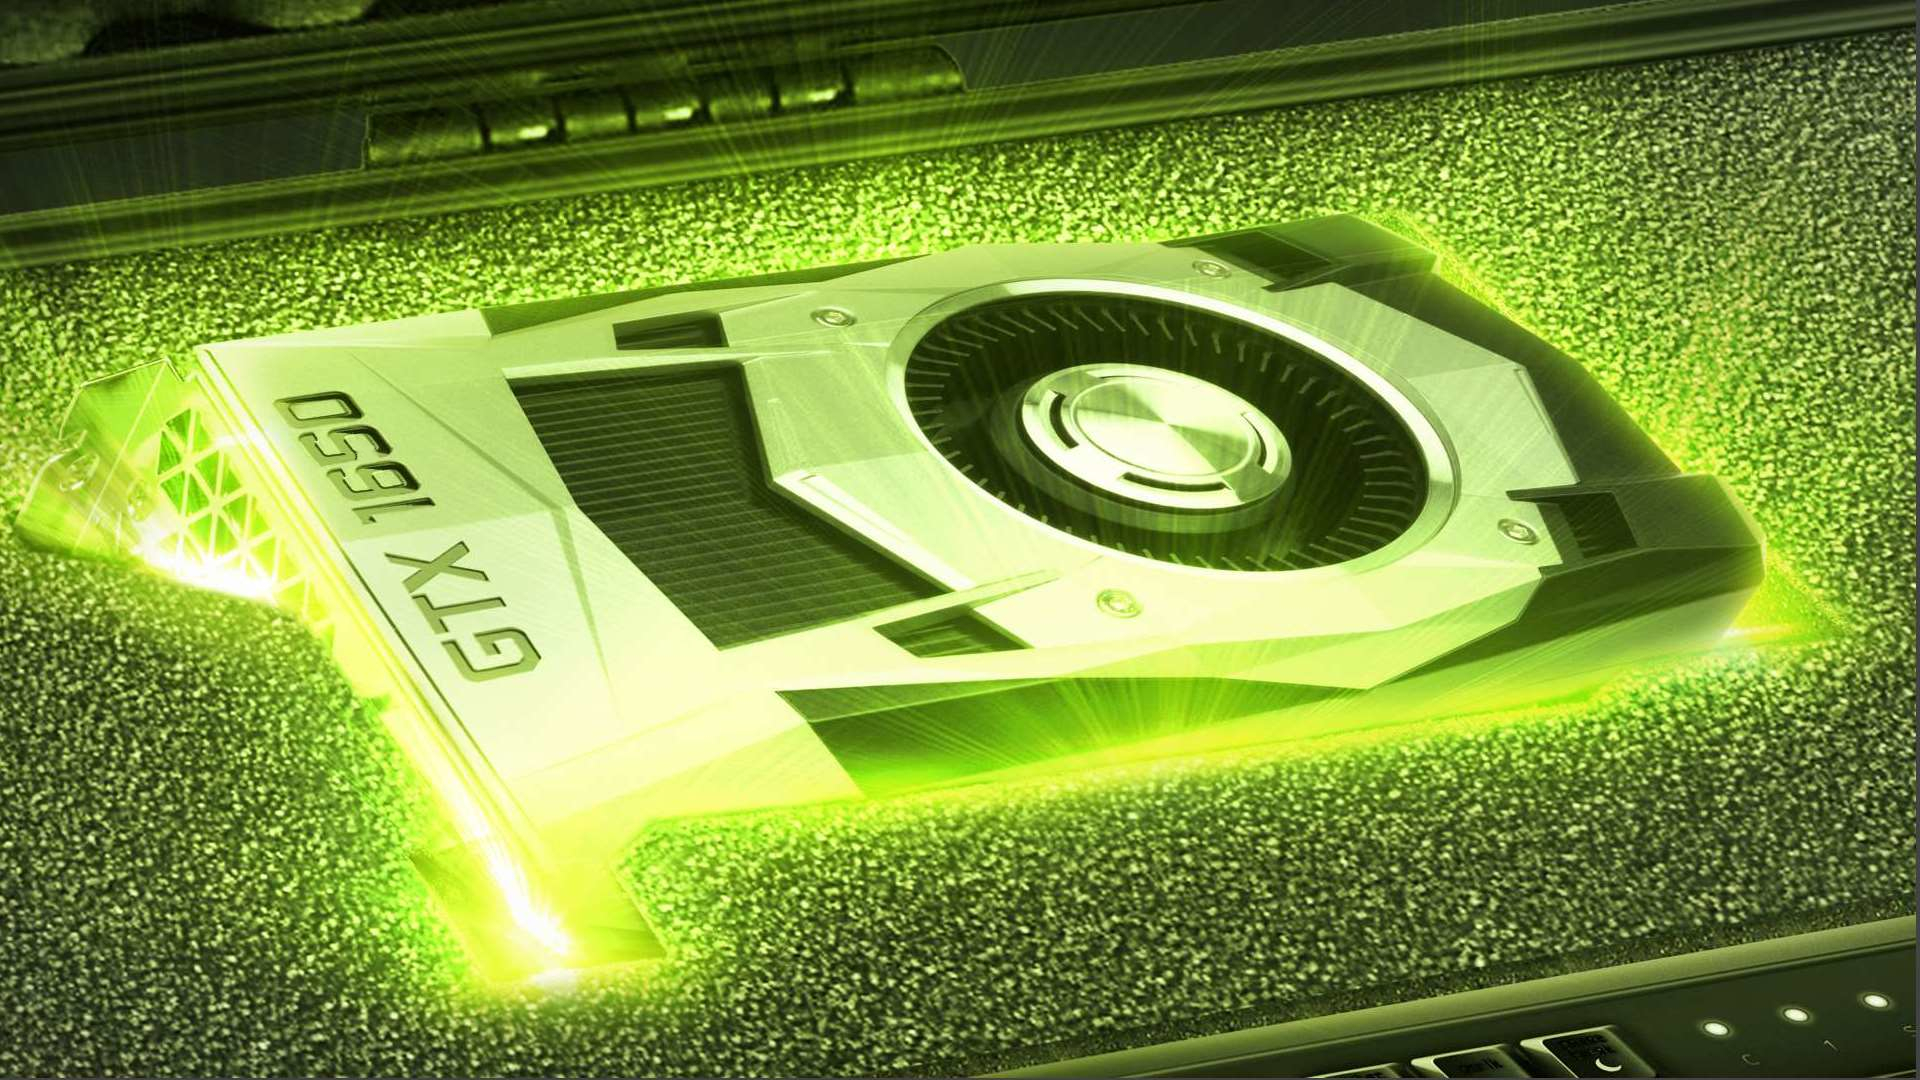 Unreleased Nvidia GTX 1650 and mobile Intel 9th Gen CPUs spotted online